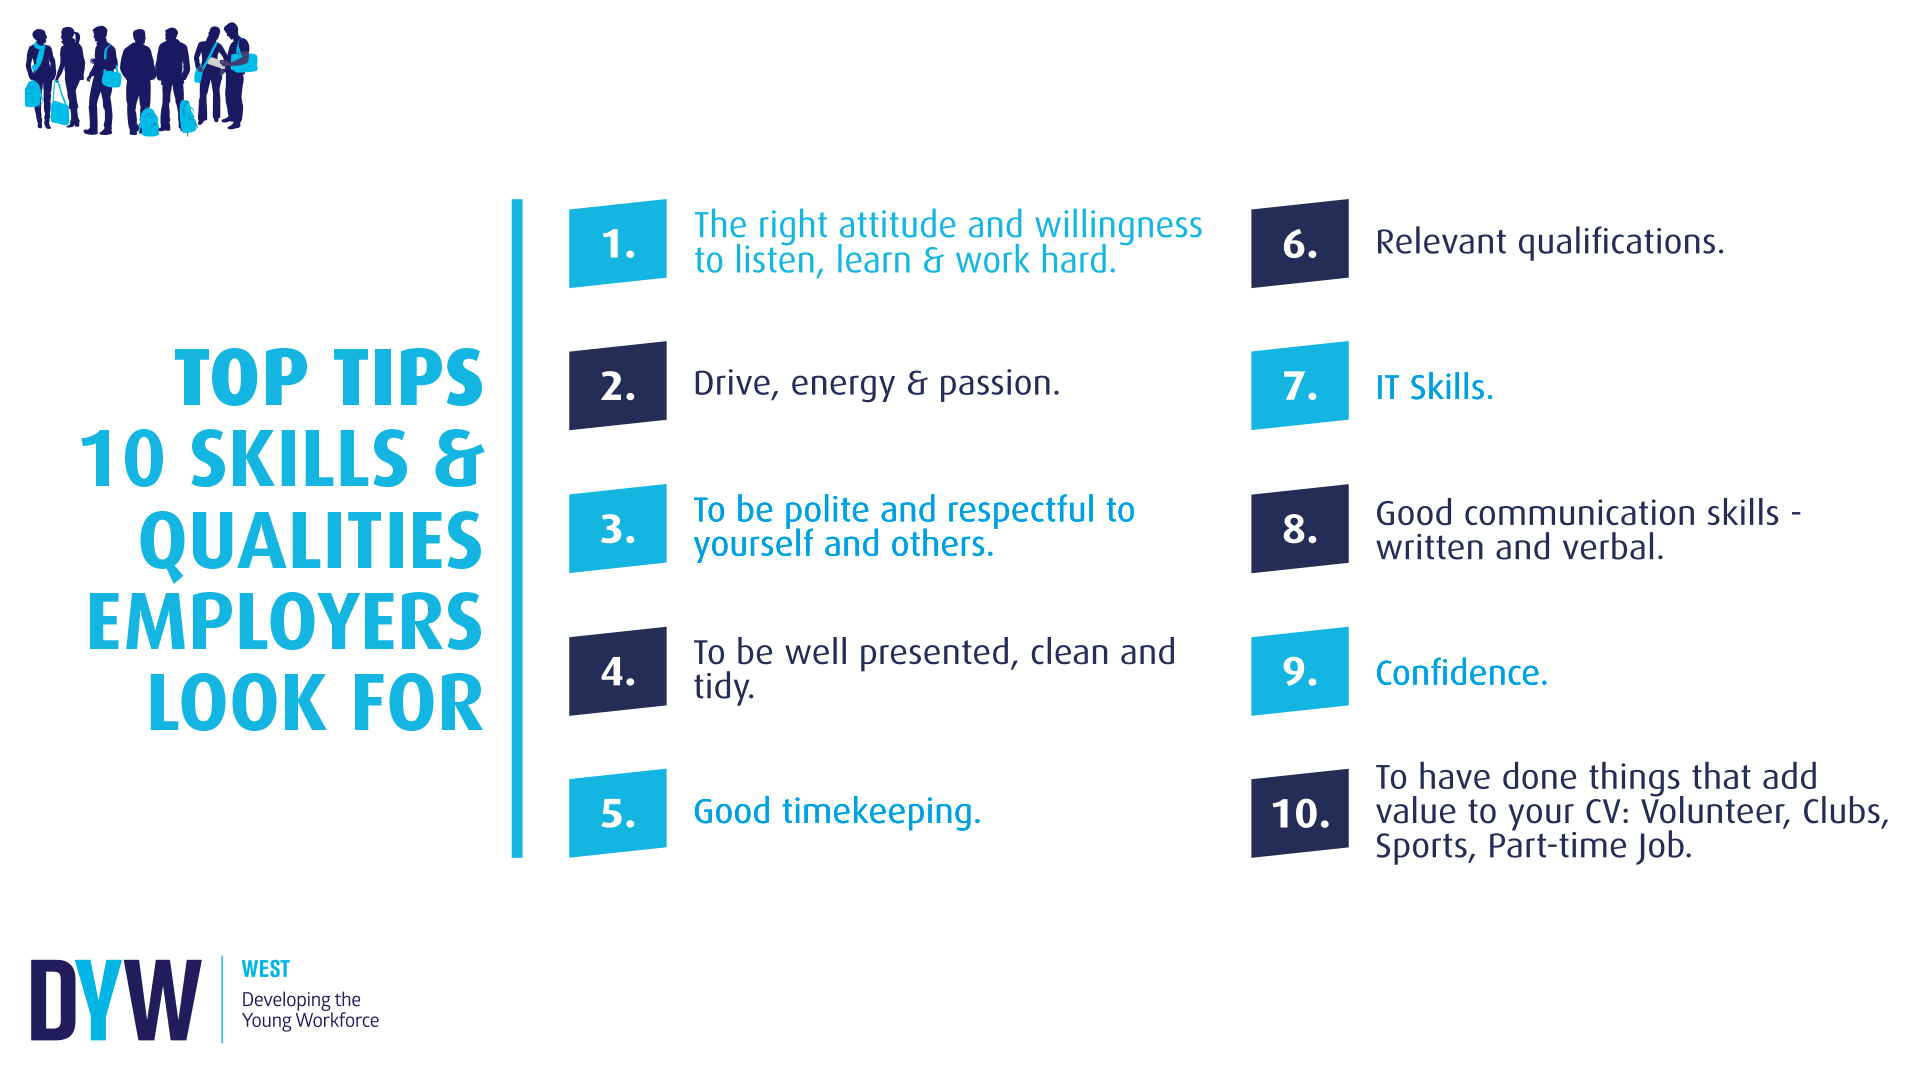 Top Tips: 10 Skills & Qualities Employers Look For